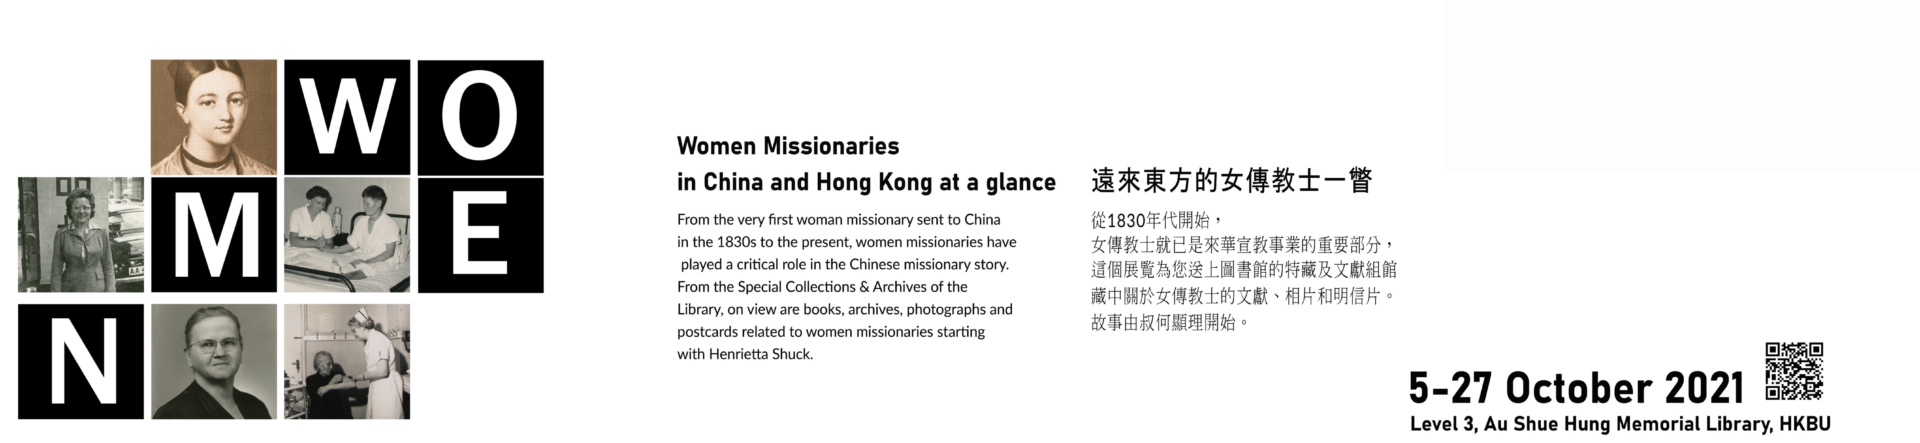 Library Exhibition - Women Missionaries in China and Hong Kong at a glance